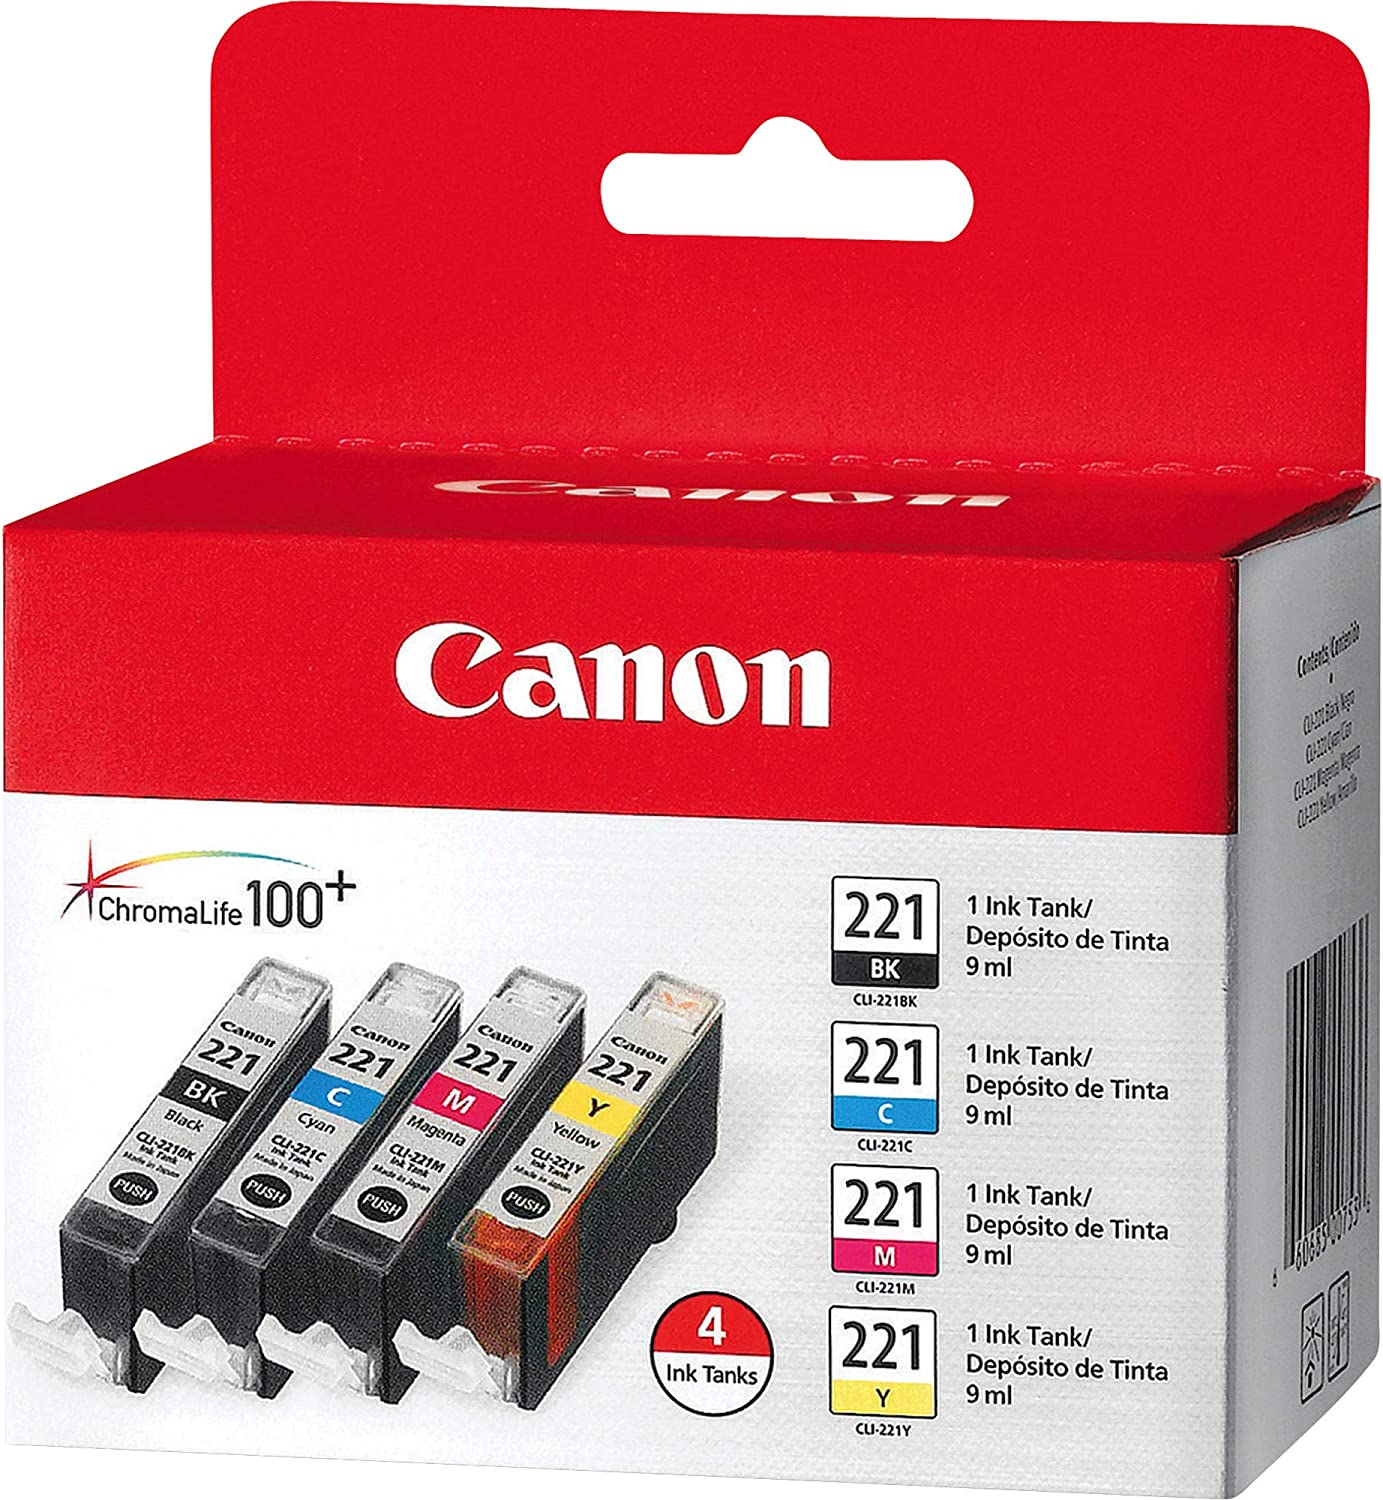 Gray, 3 Pack MS Imaging Supply Compatible Inkjet Cartridge Replacement for Canon CLI-221GY